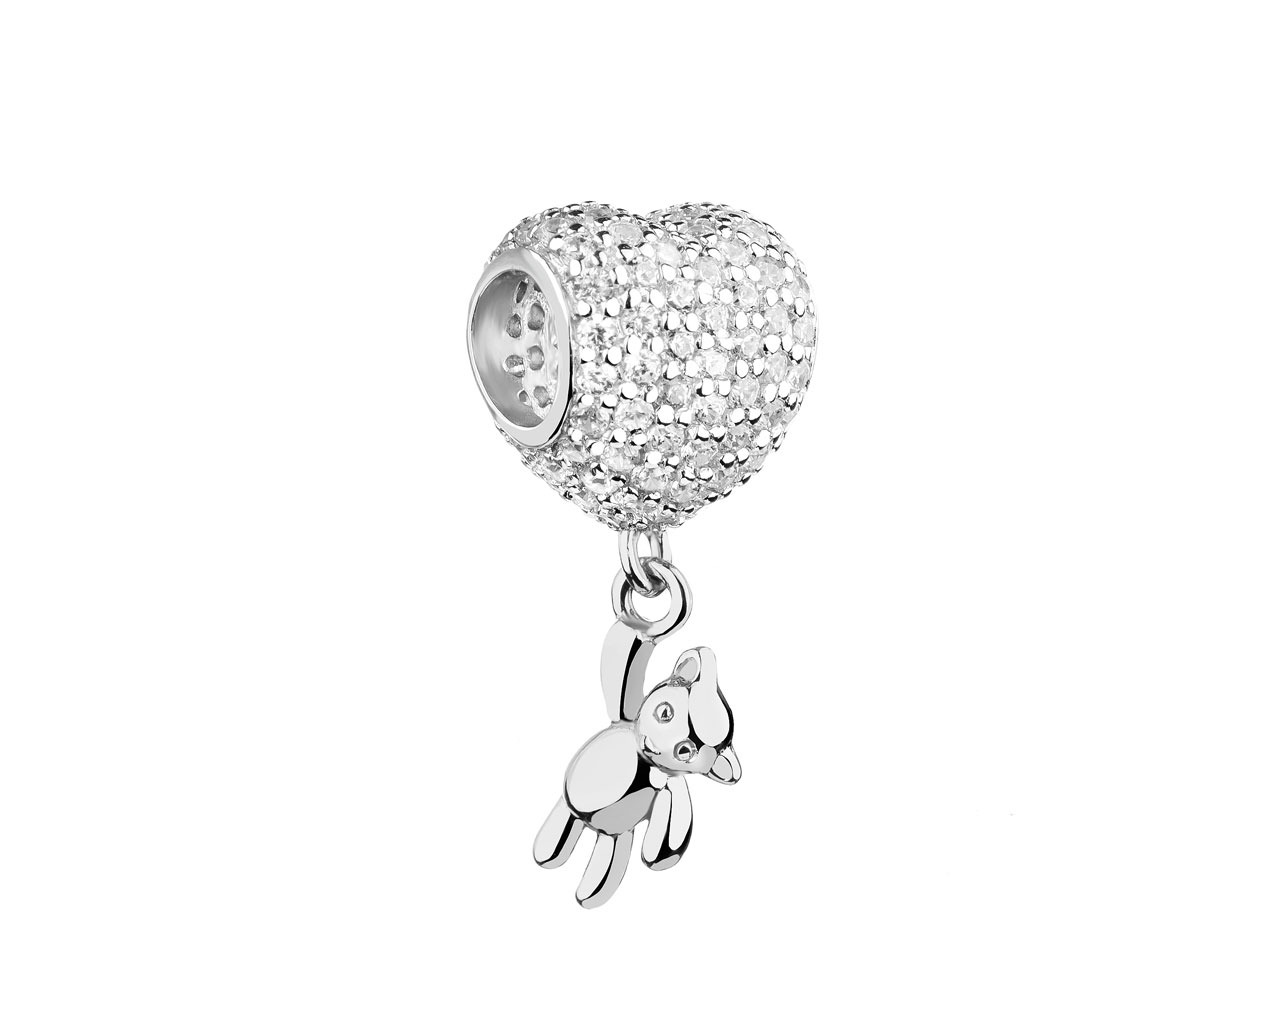 Sterling silver beads pendant with cubic zirconia - heart, teddy